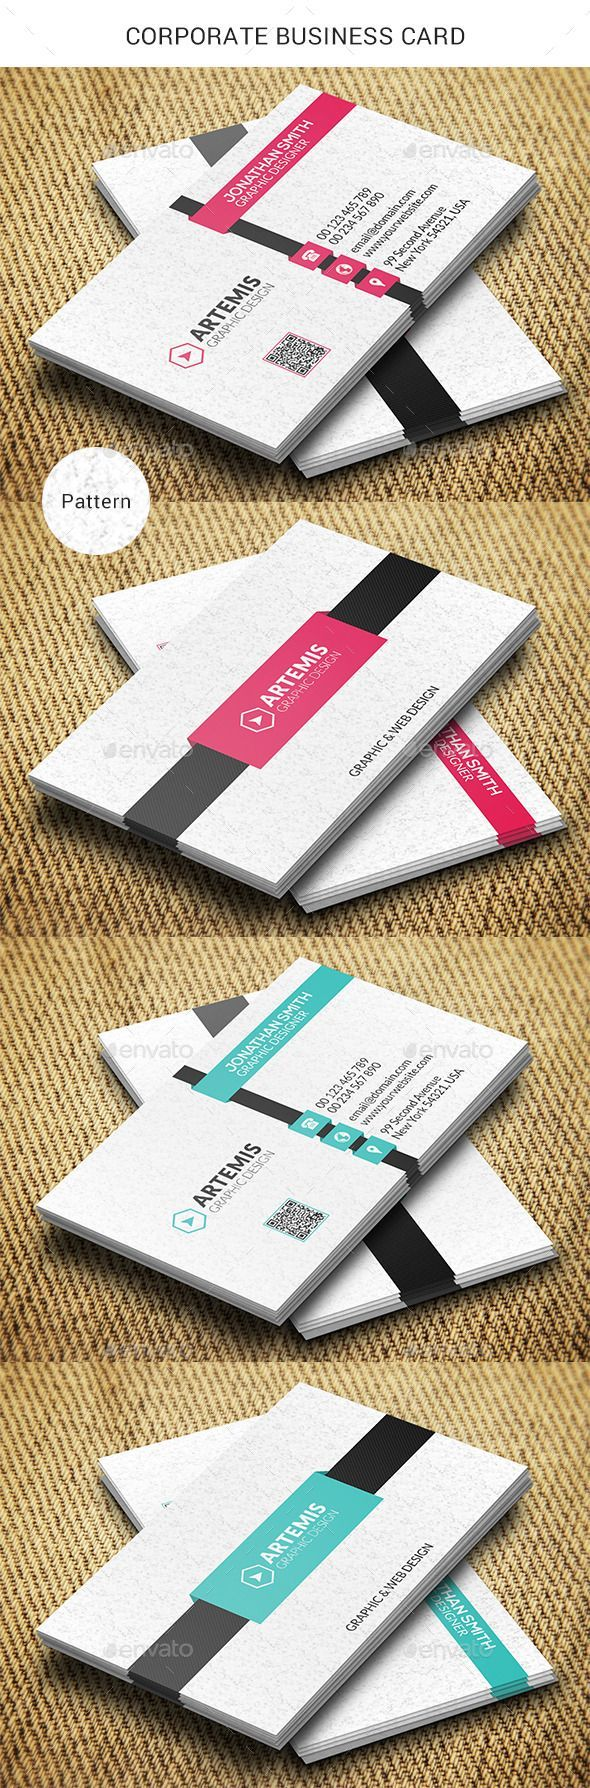 Design 2side business card in 24 hrs   Business cards, Business ...